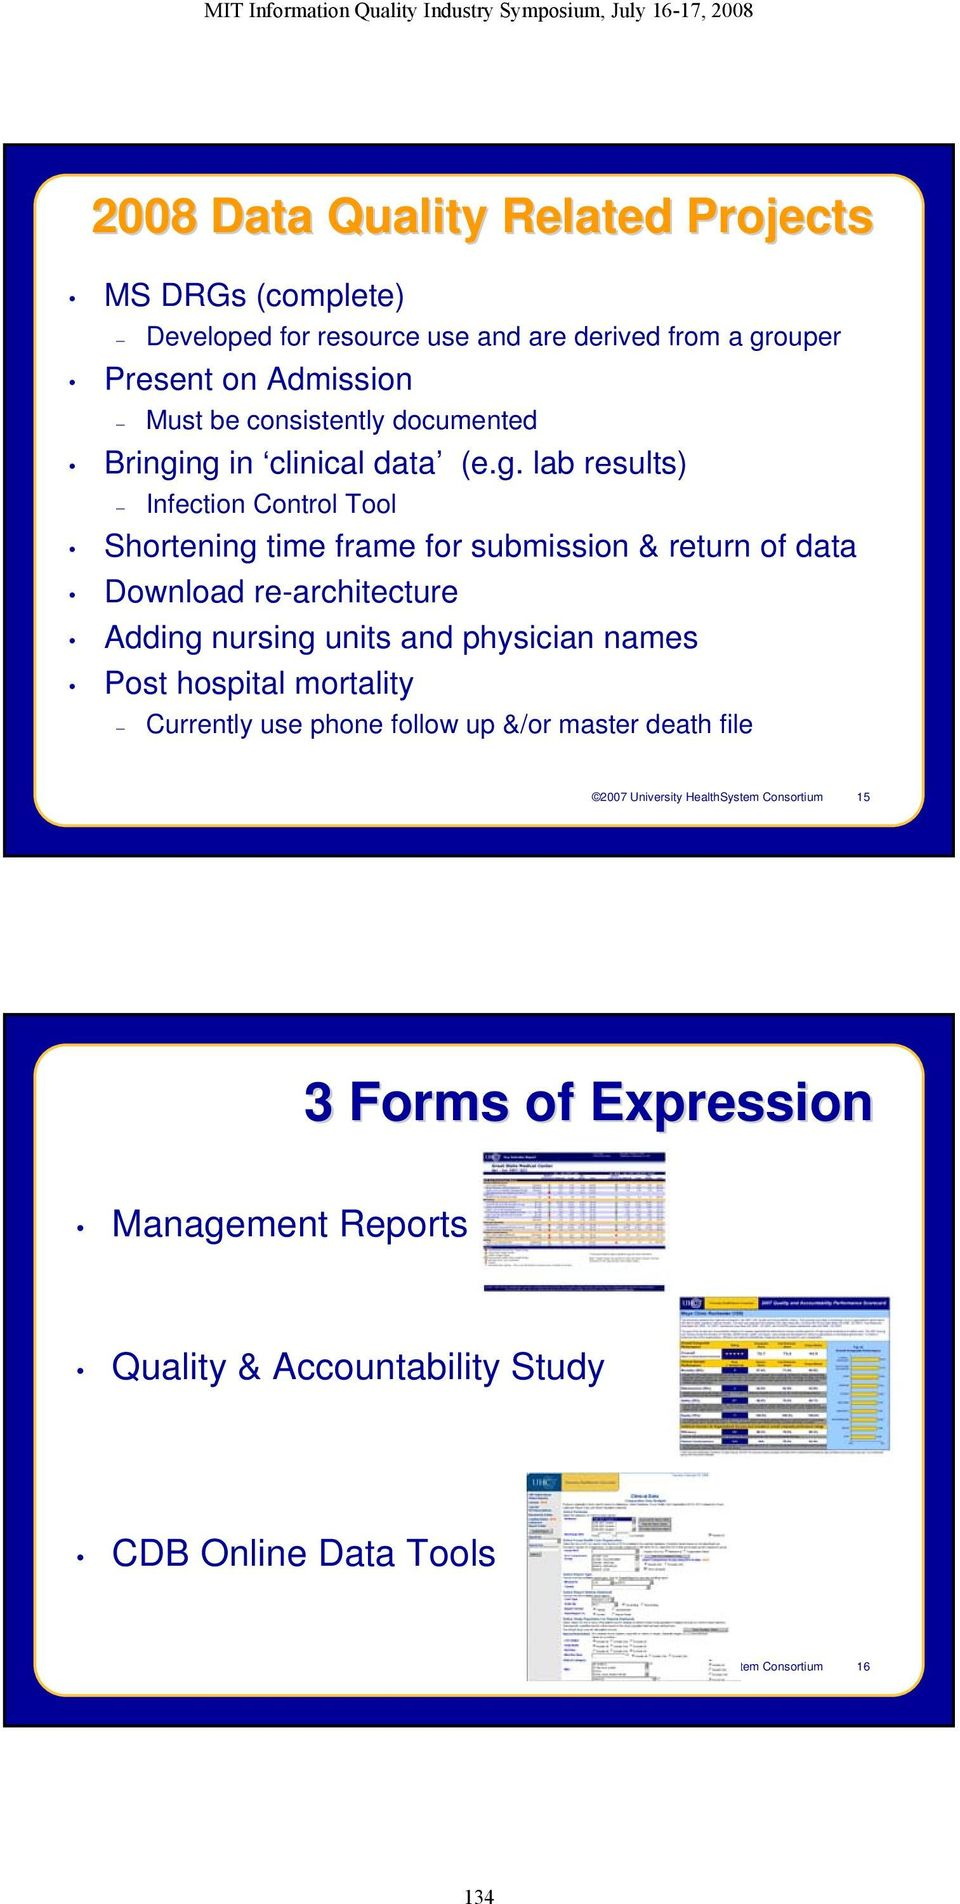 ng in clinical data (e.g. lab results) Infection Control Tool Shortening time frame for submission & return of data Download re-architecture Adding